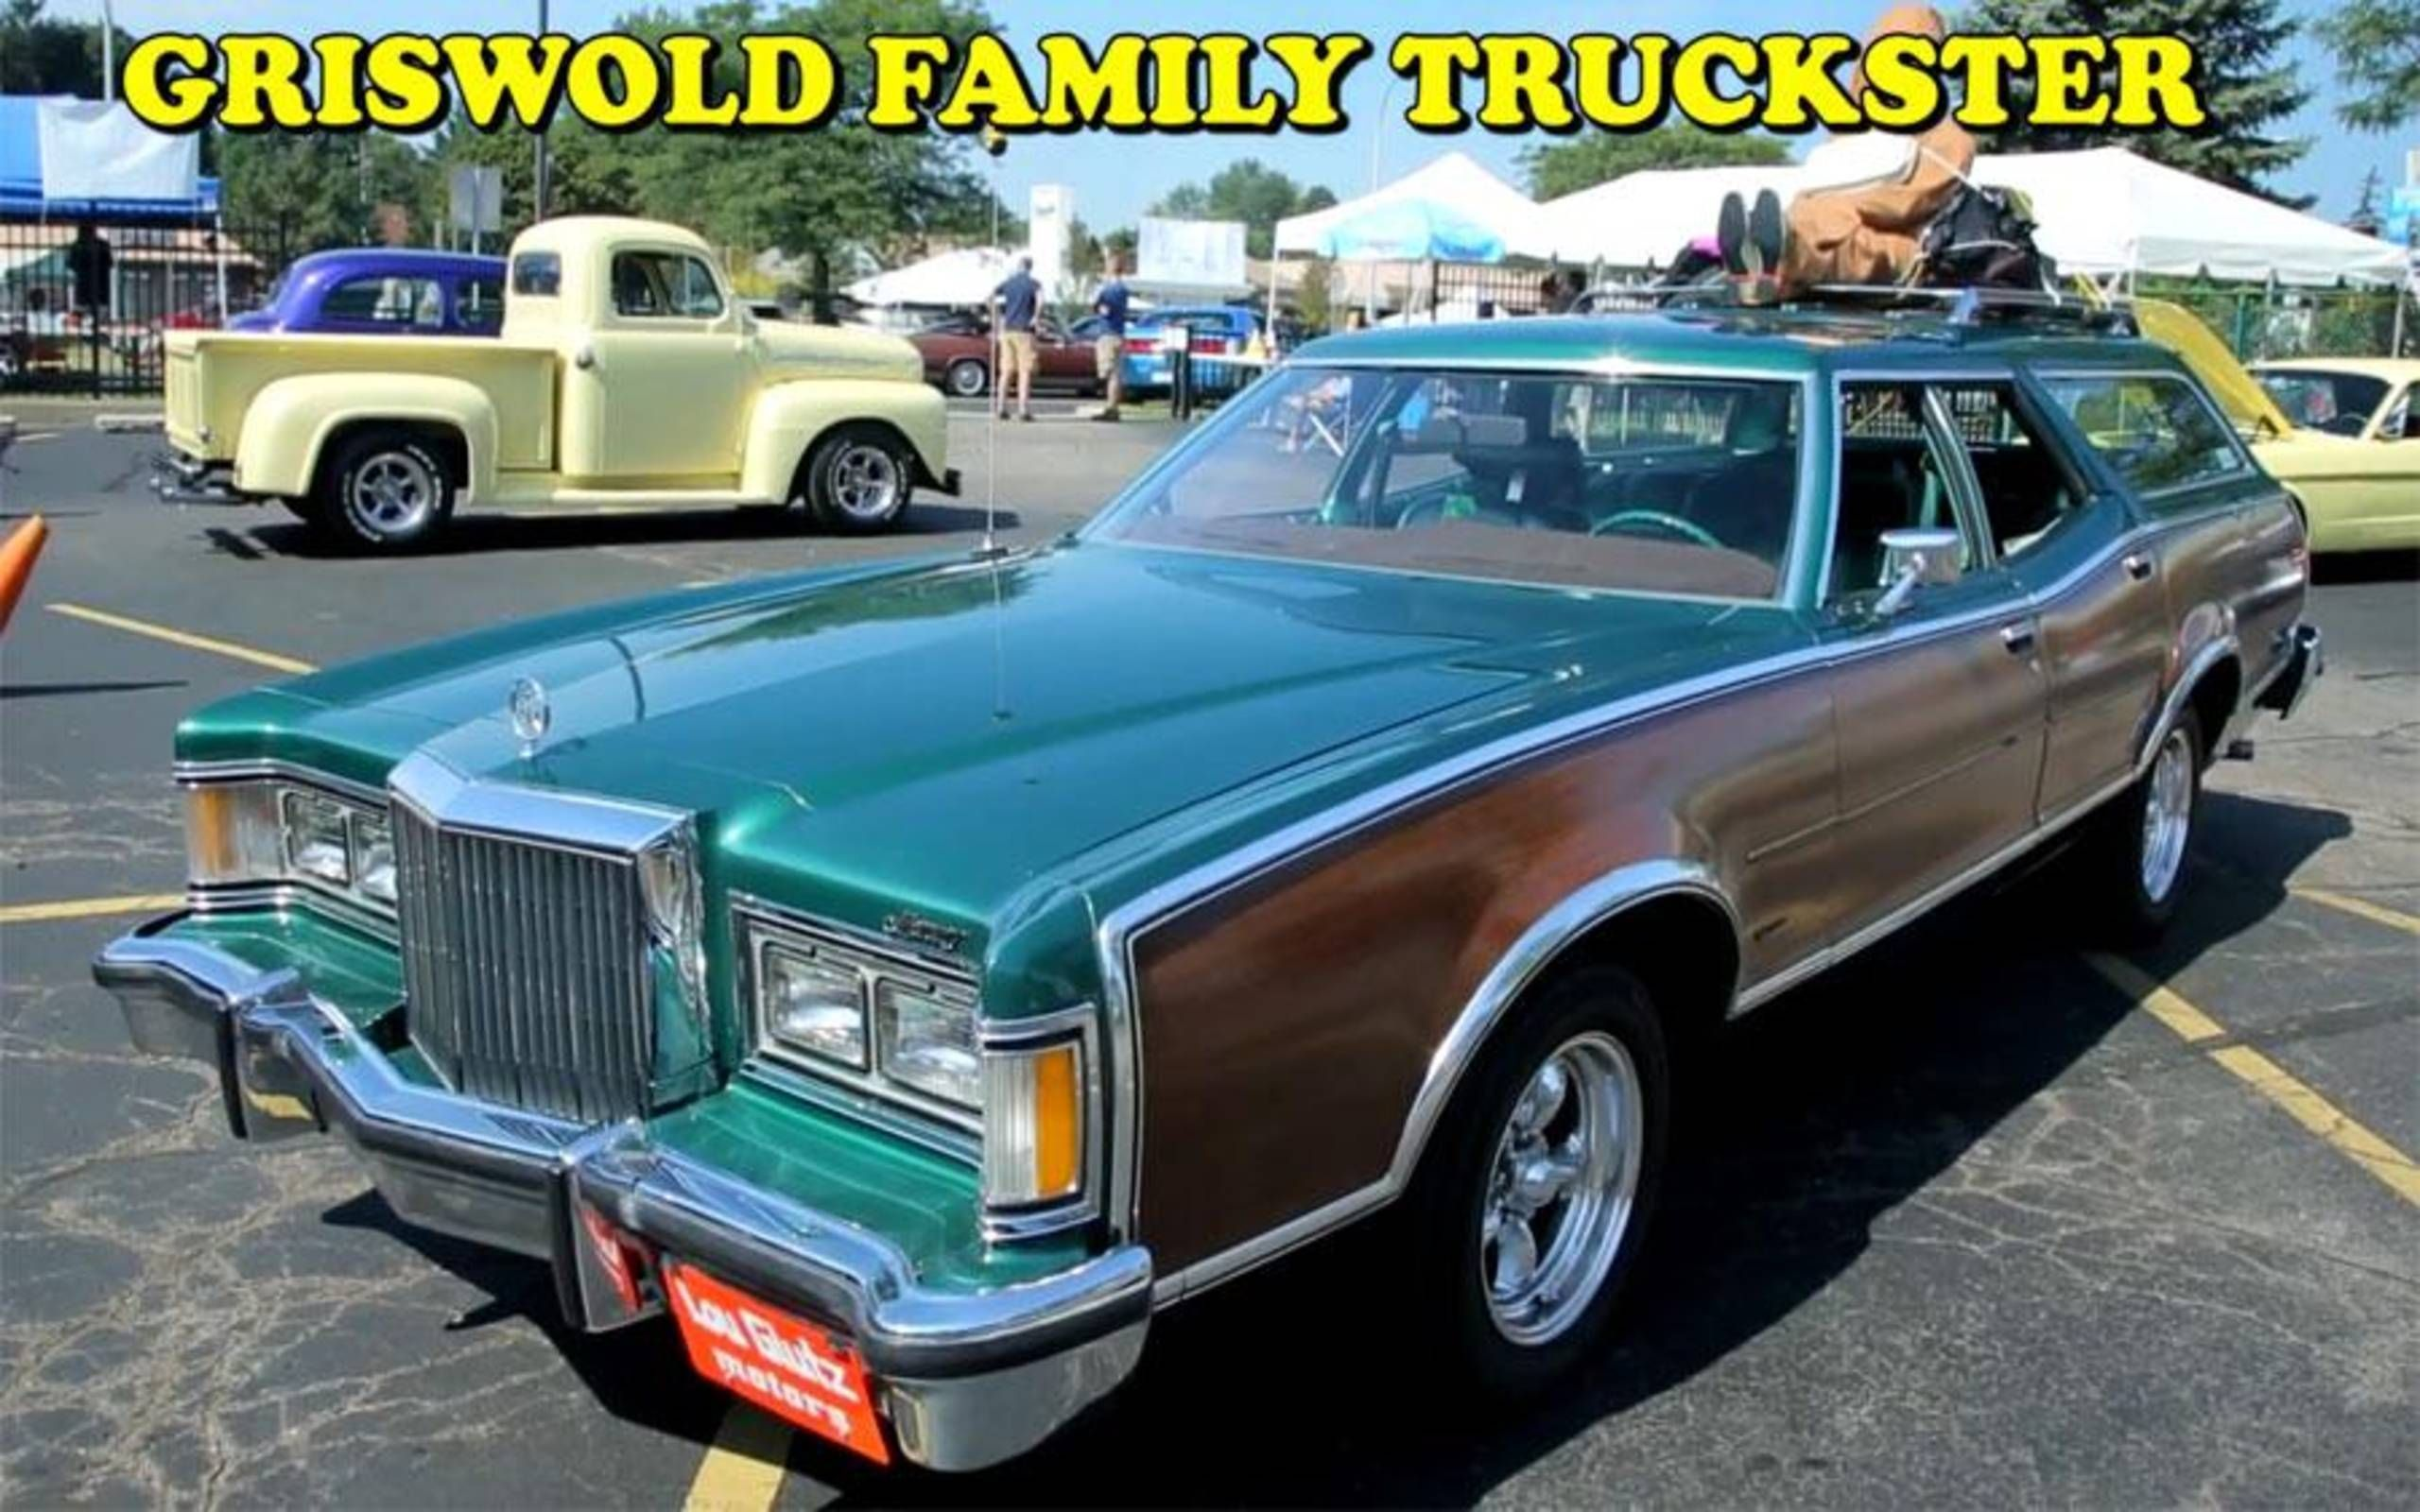 Film Friday The Griswold Family Truckster According To Jeff Wasilewski